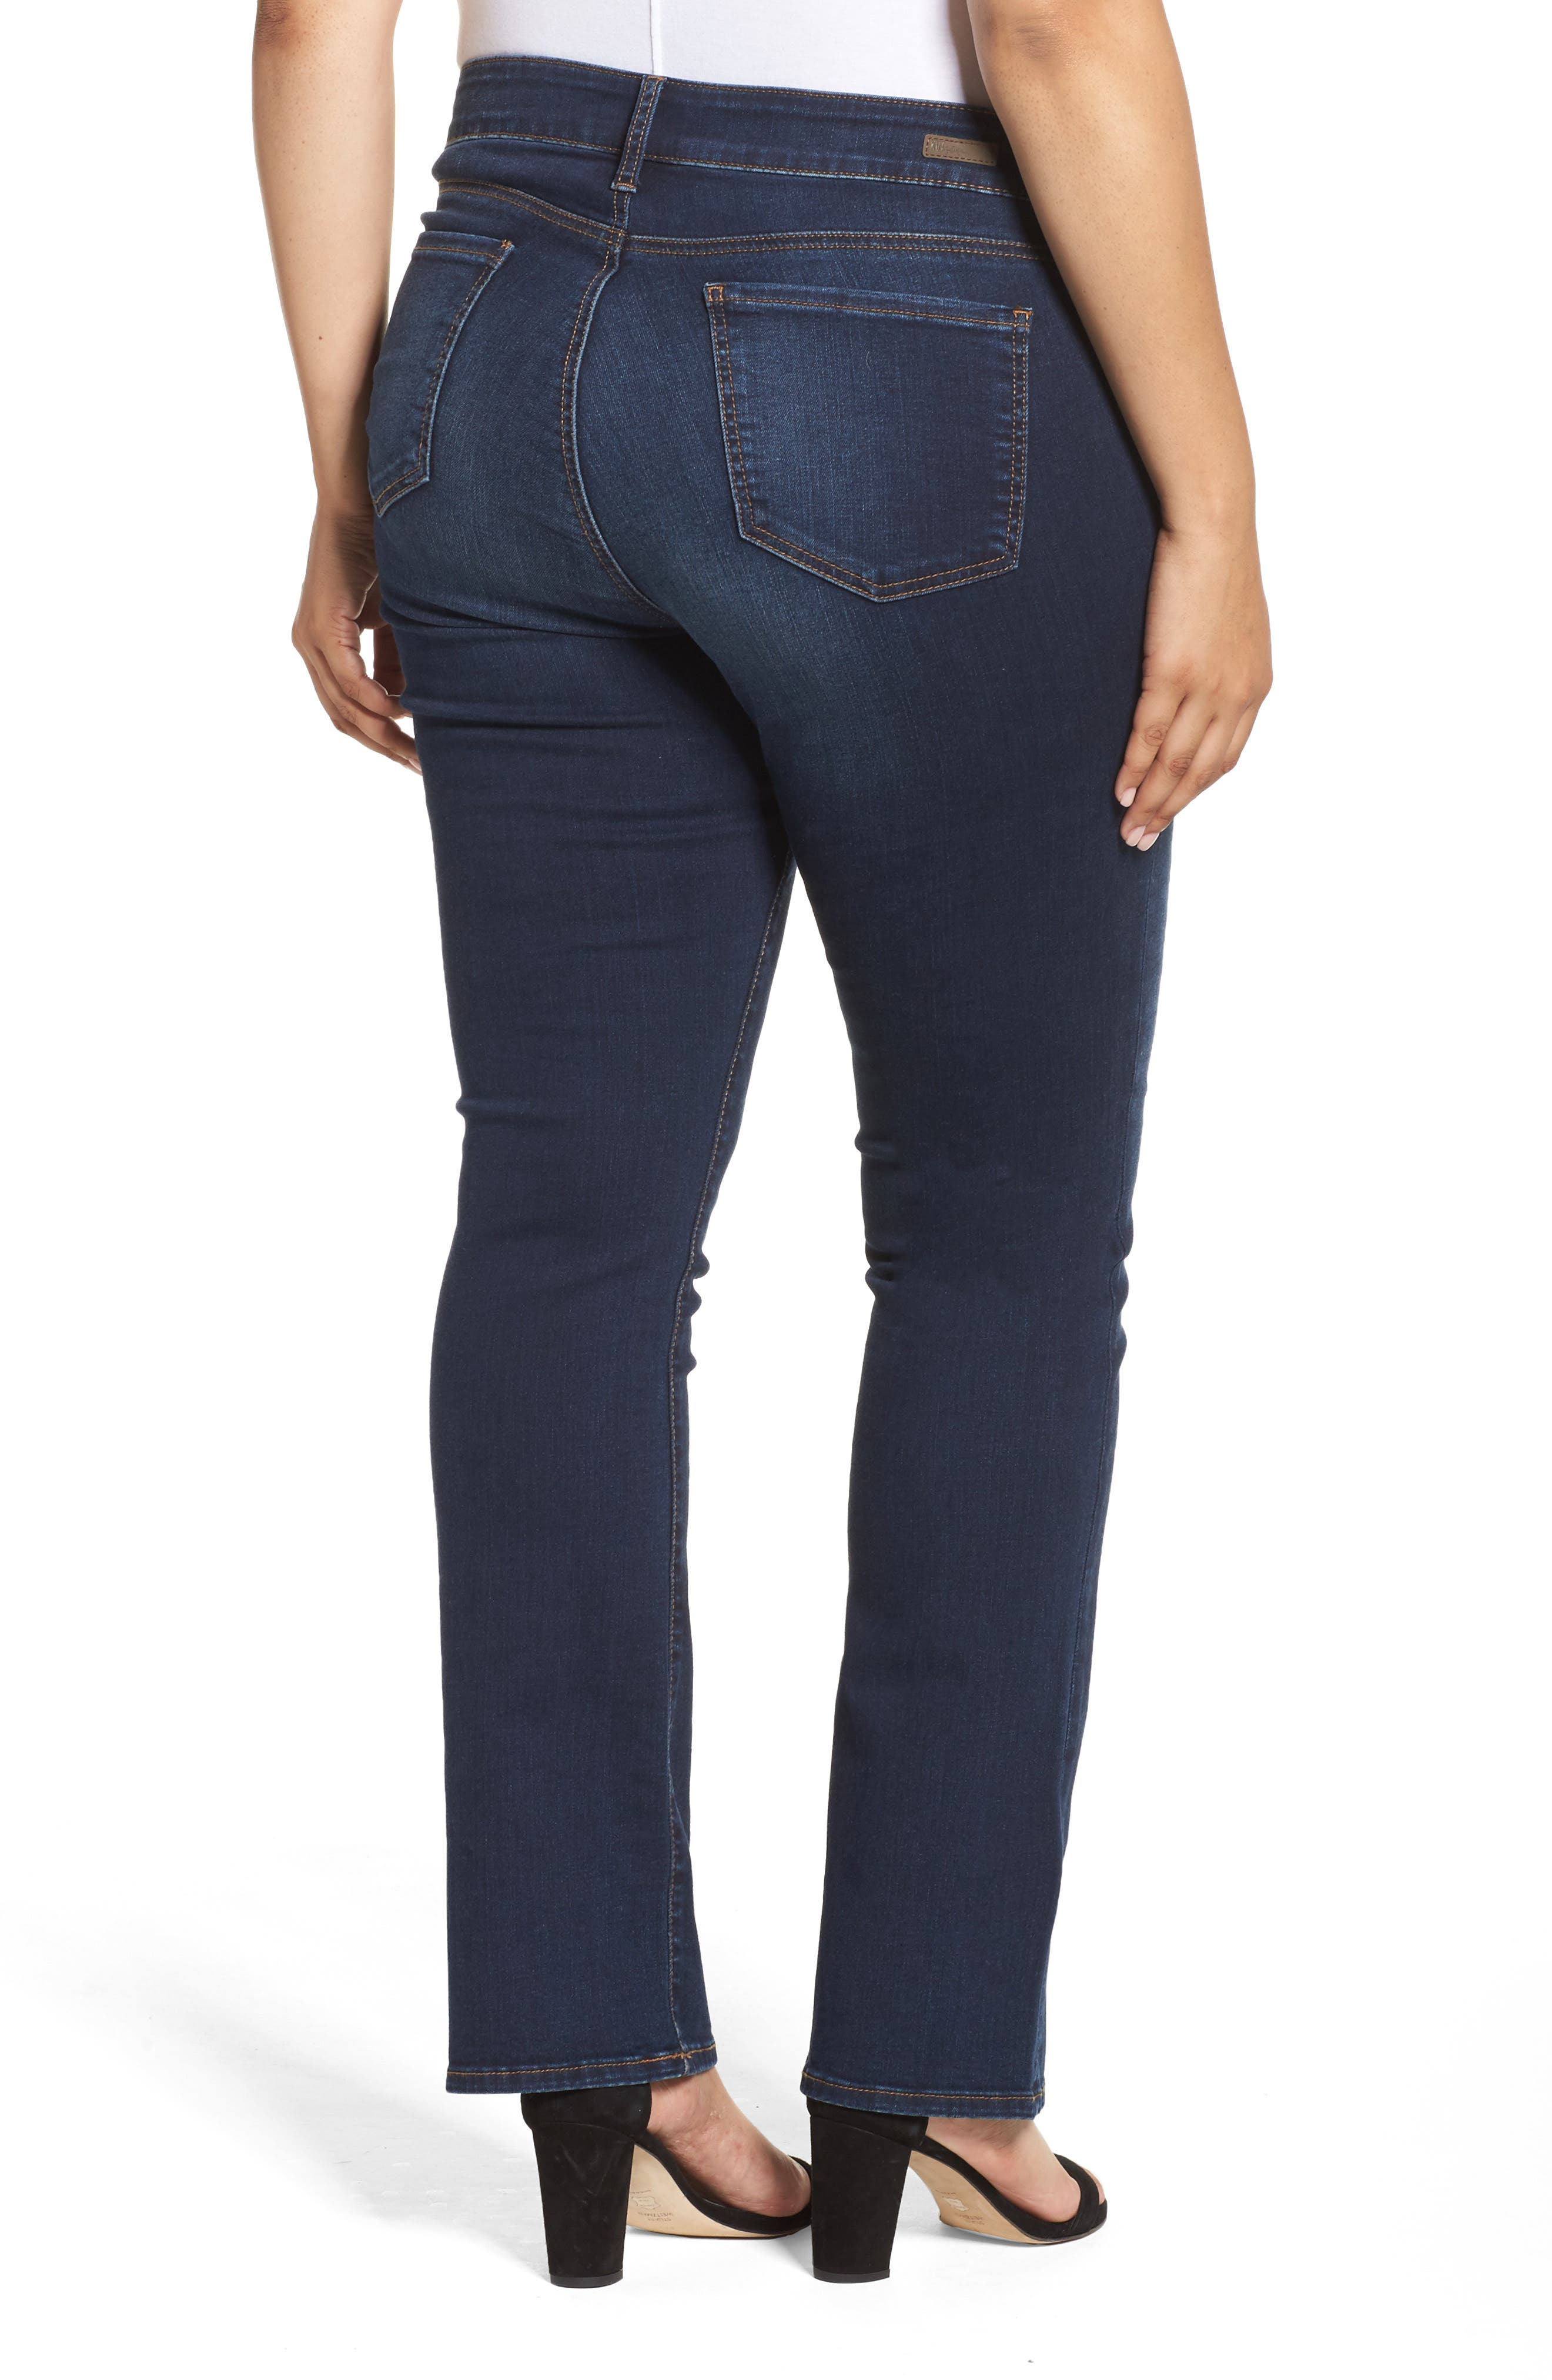 KUT FROM THE KLOTH, Natalie High Waist Bootcut Jeans, Alternate thumbnail 2, color, CLOSENESS W/ EURO BASE WASH